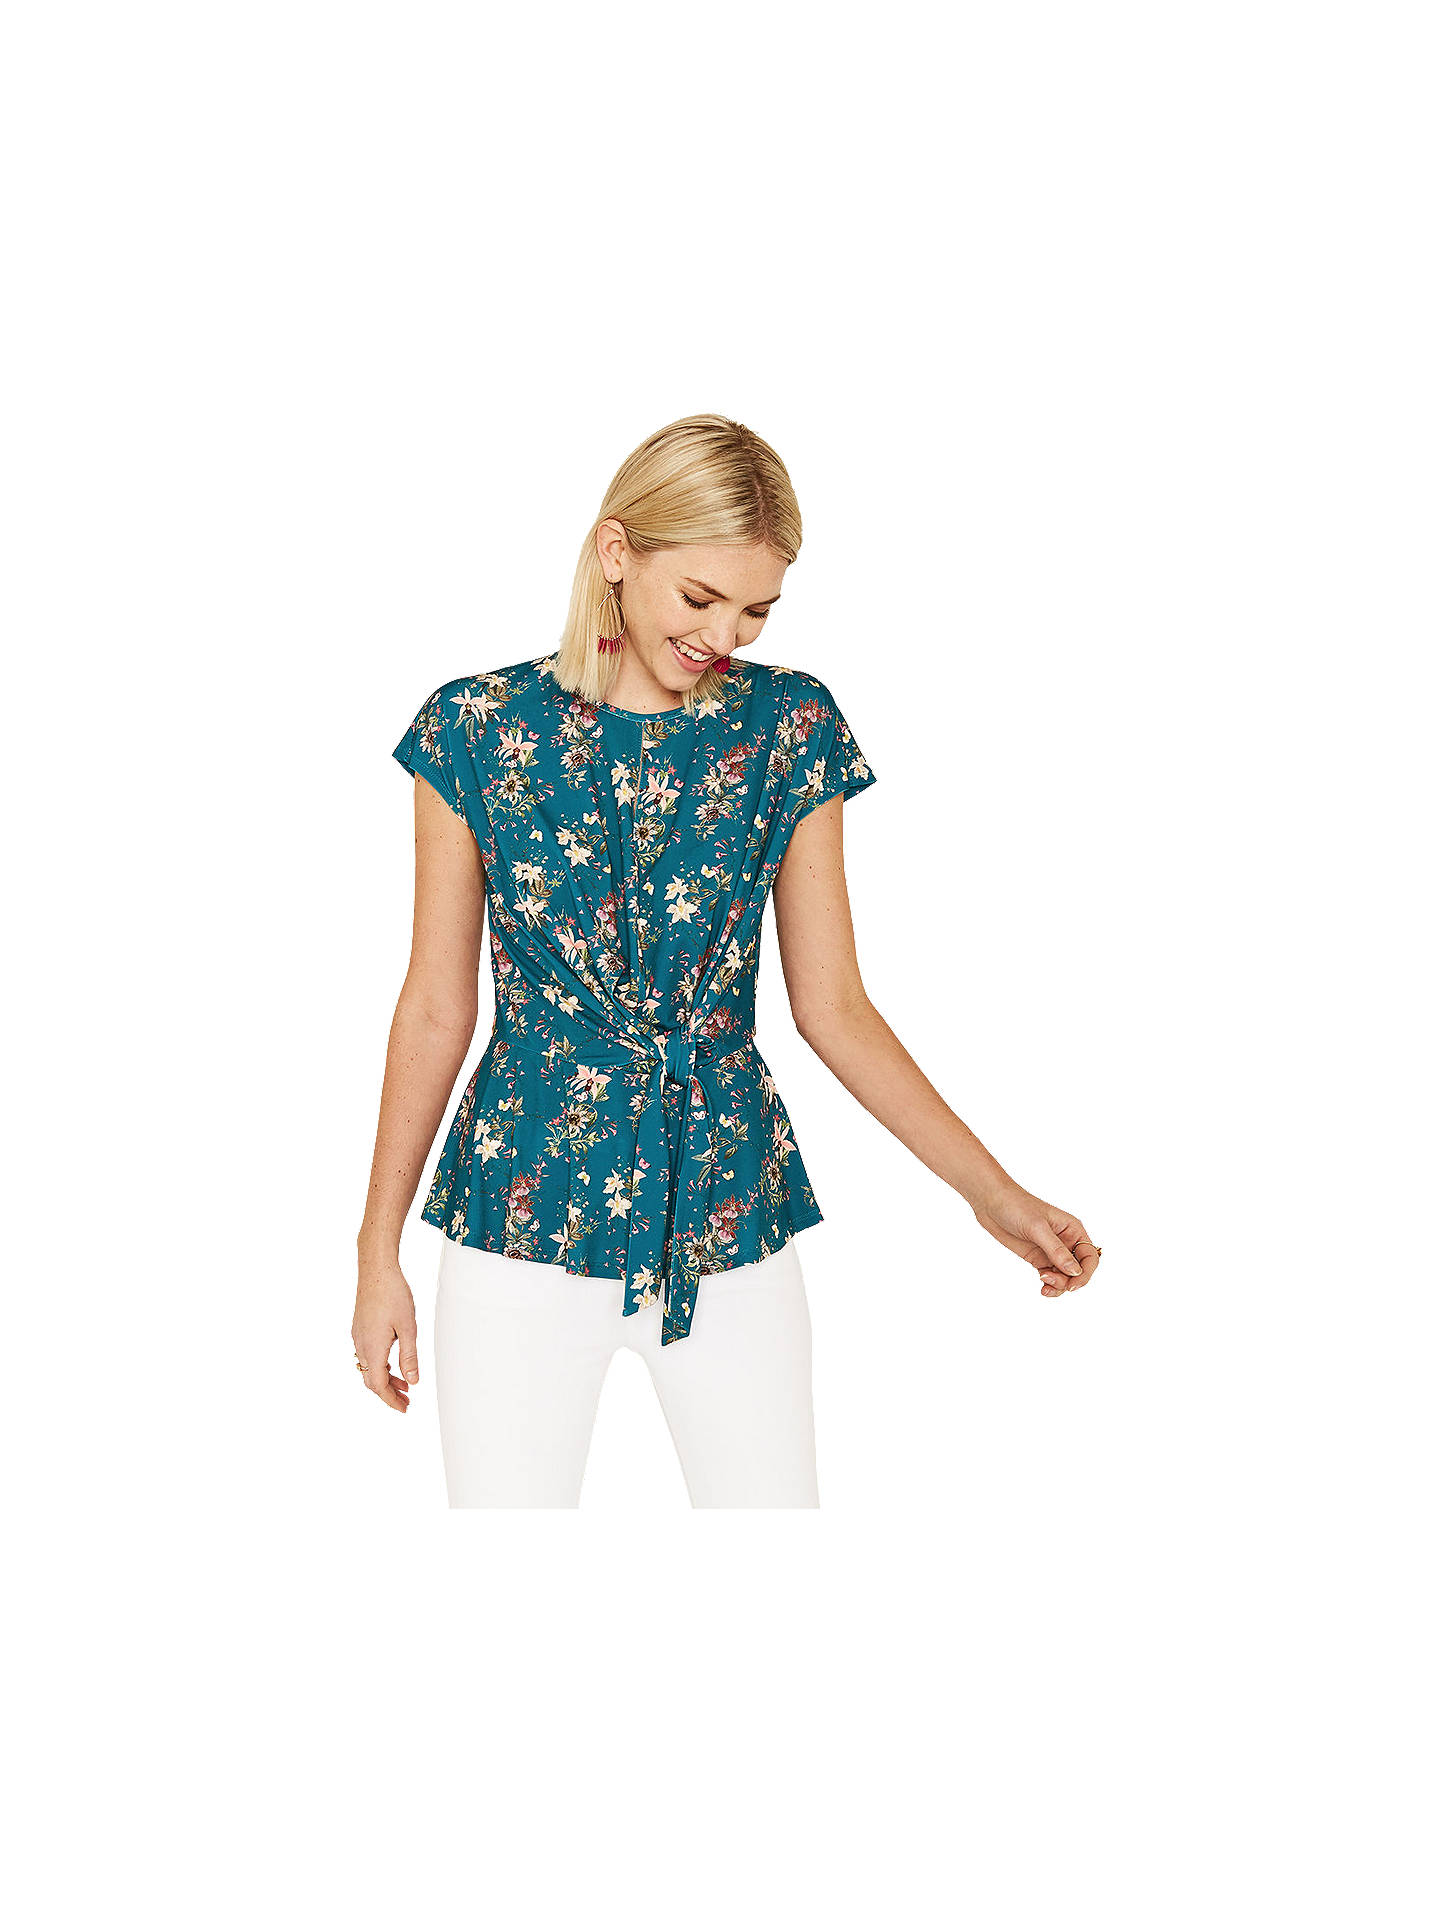 e4d46019edc7 Buy Oasis Mini Kelsey Top, Multi/Green, XS Online at johnlewis.com ...